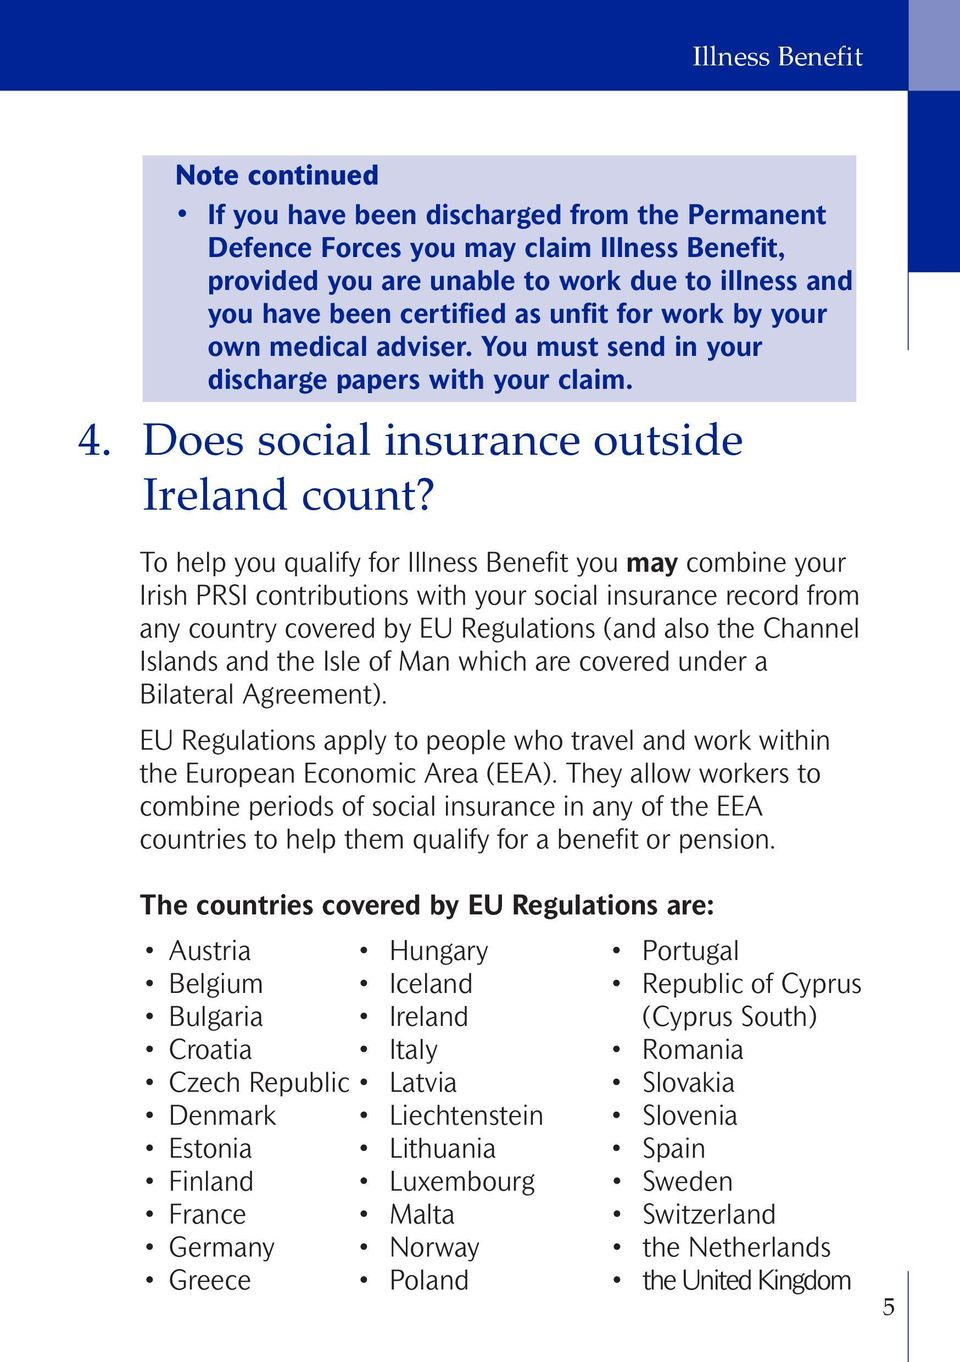 To help you qualify for Illness Benefit you may combine your Irish PRSI contributions with your social insurance record from any country covered by EU Regulations (and also the Channel Islands and